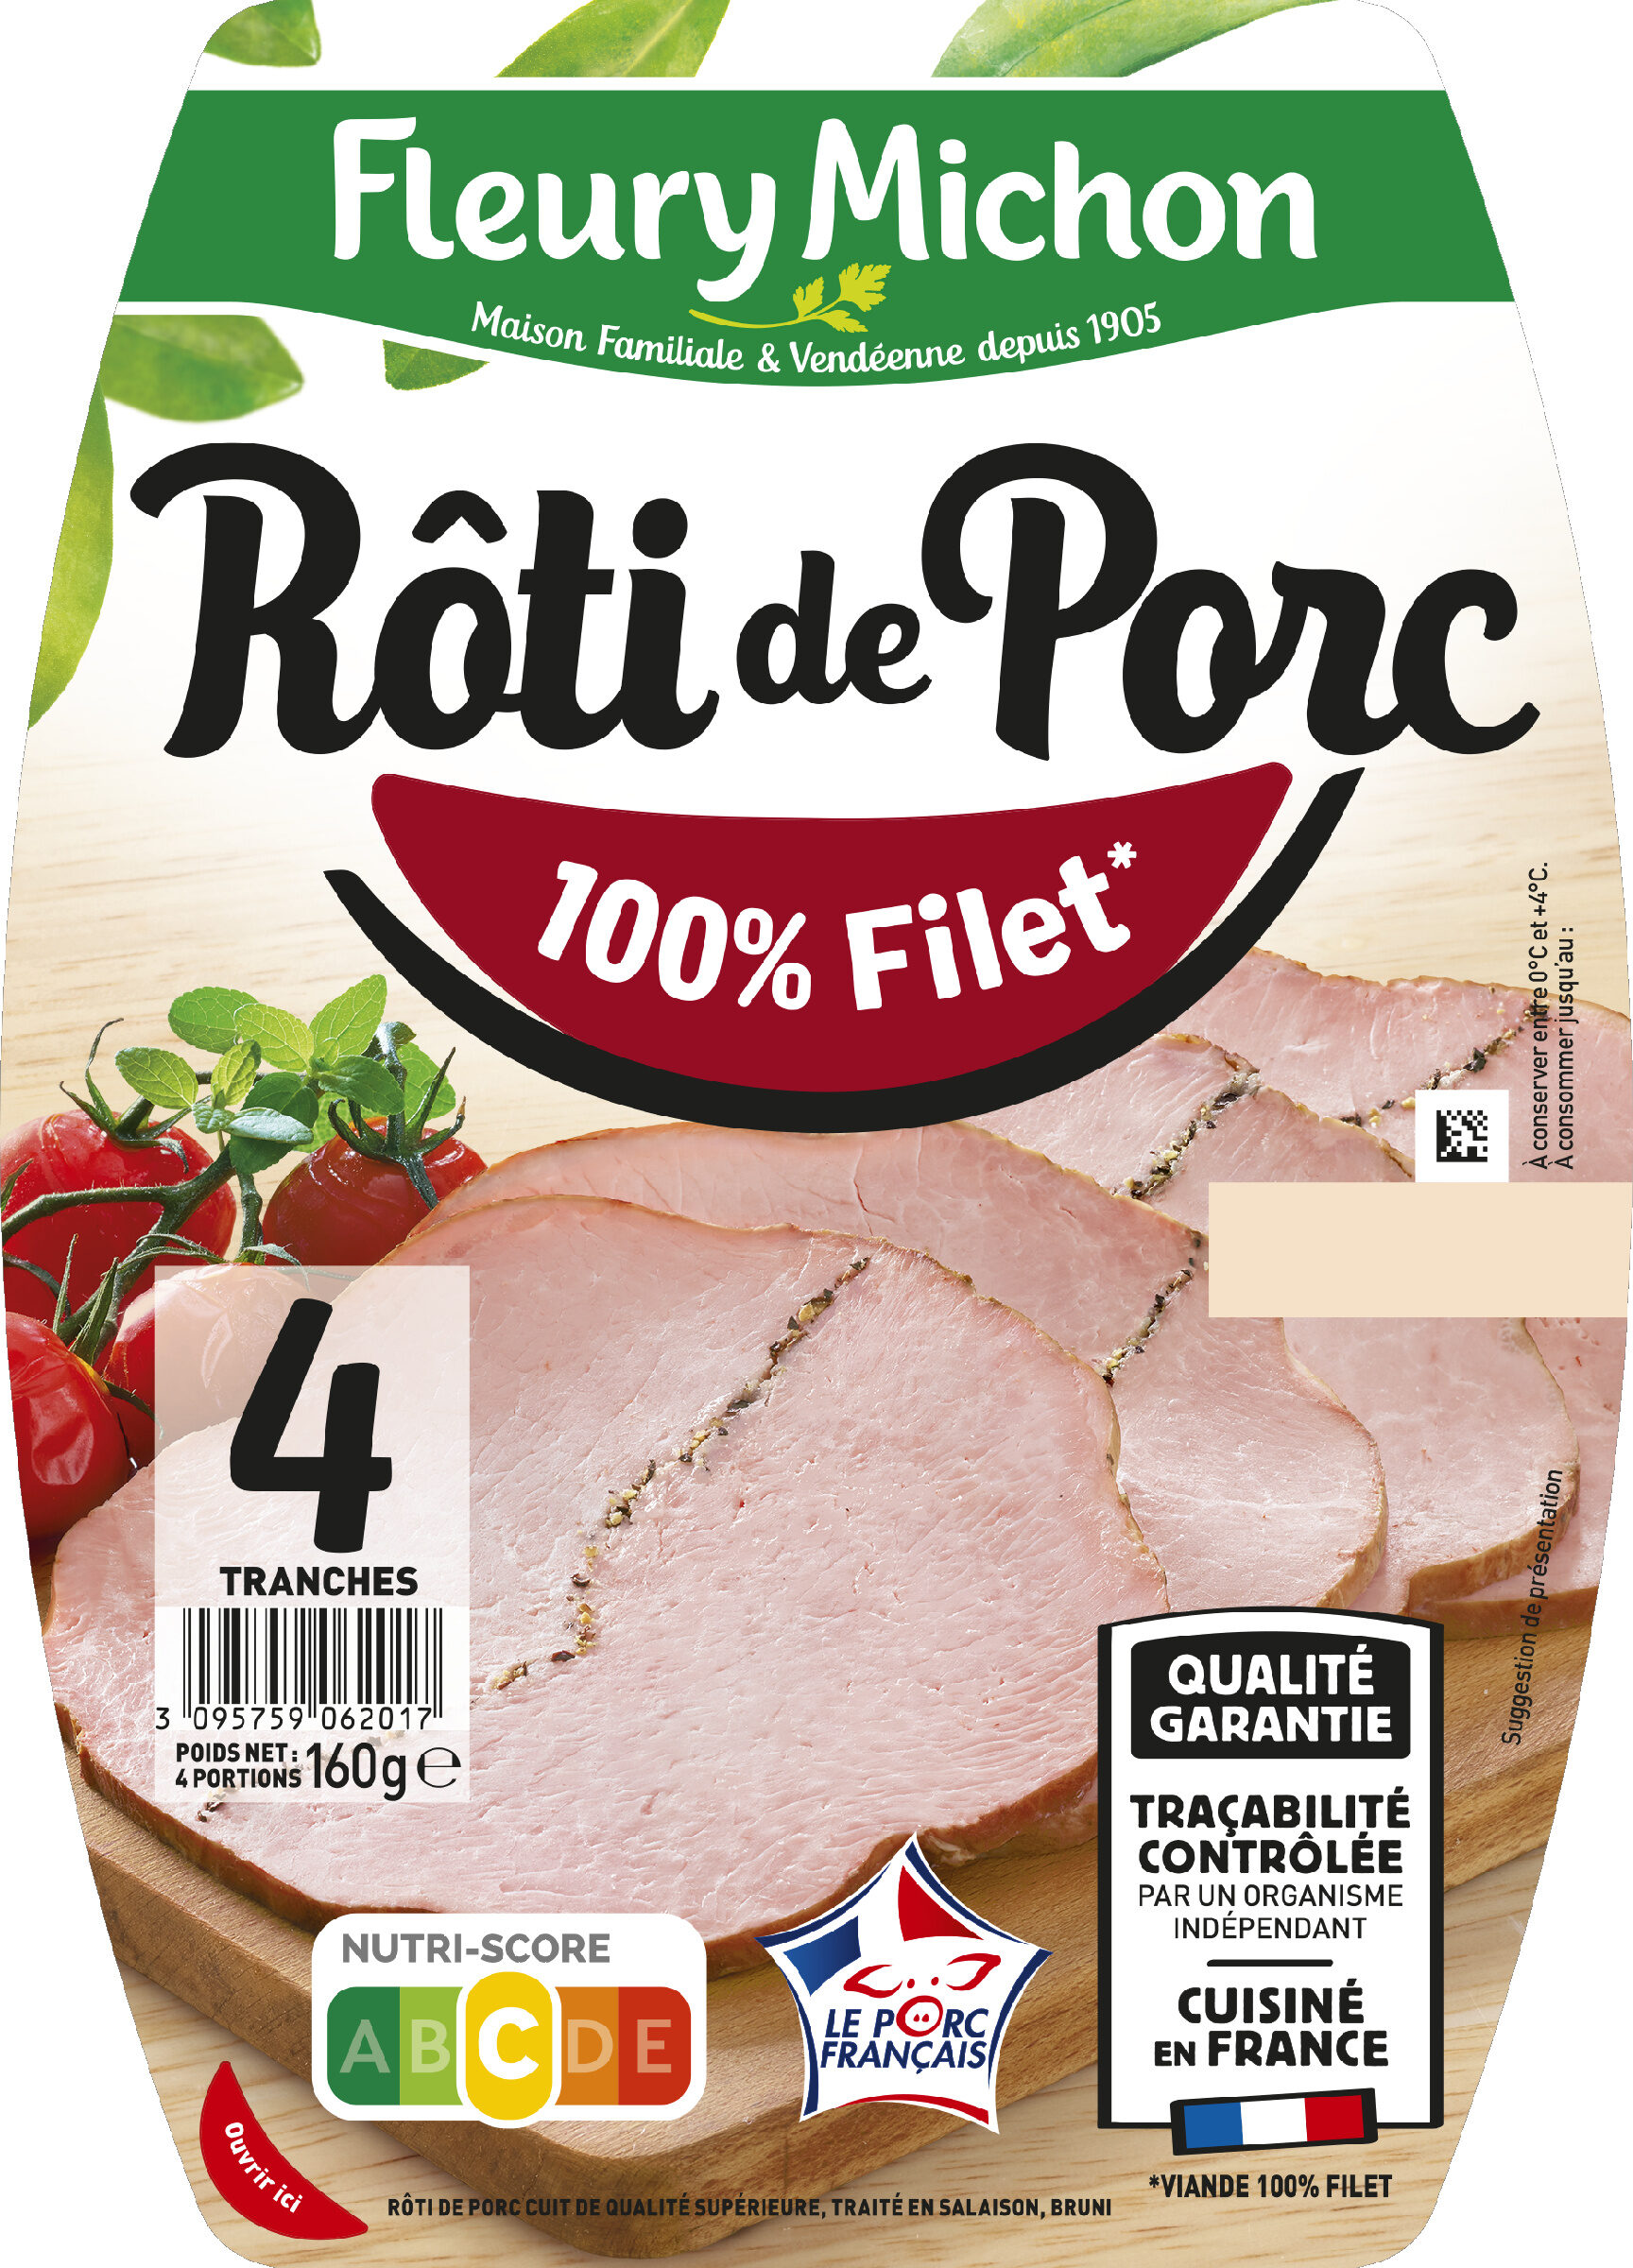 Rôti de Porc - 100 % filet* - Product - fr